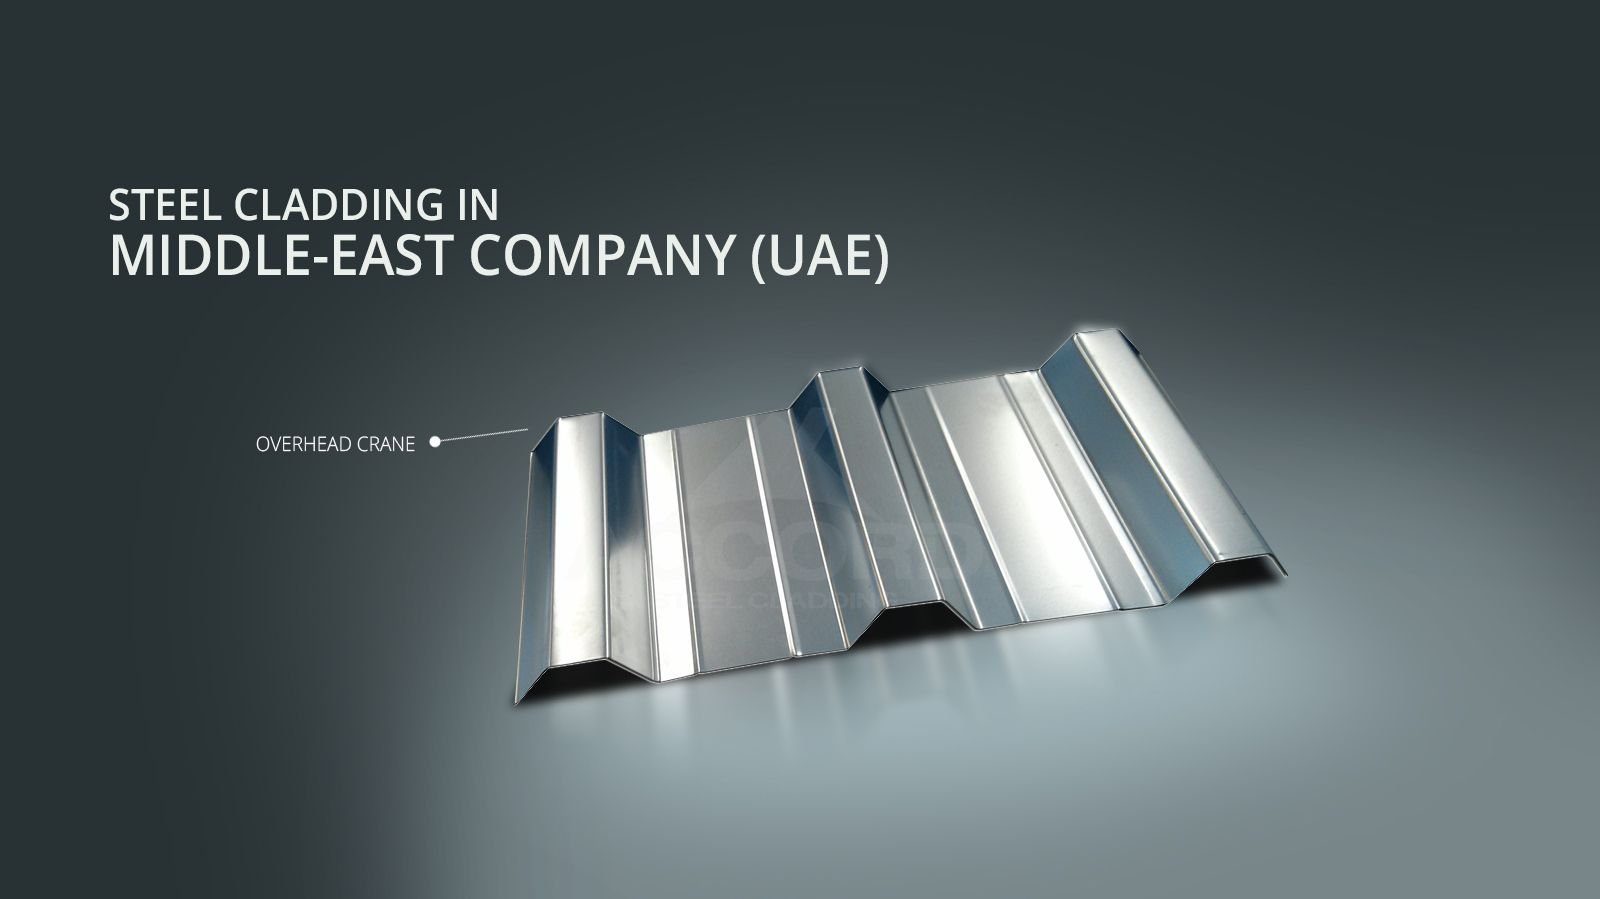 Steel Cladding In Middle East Company Website Www Vibgyorsteel Org Pre Engineered Steel Building Insul Insulated Panels Corrugated Roofing Steel Cladding